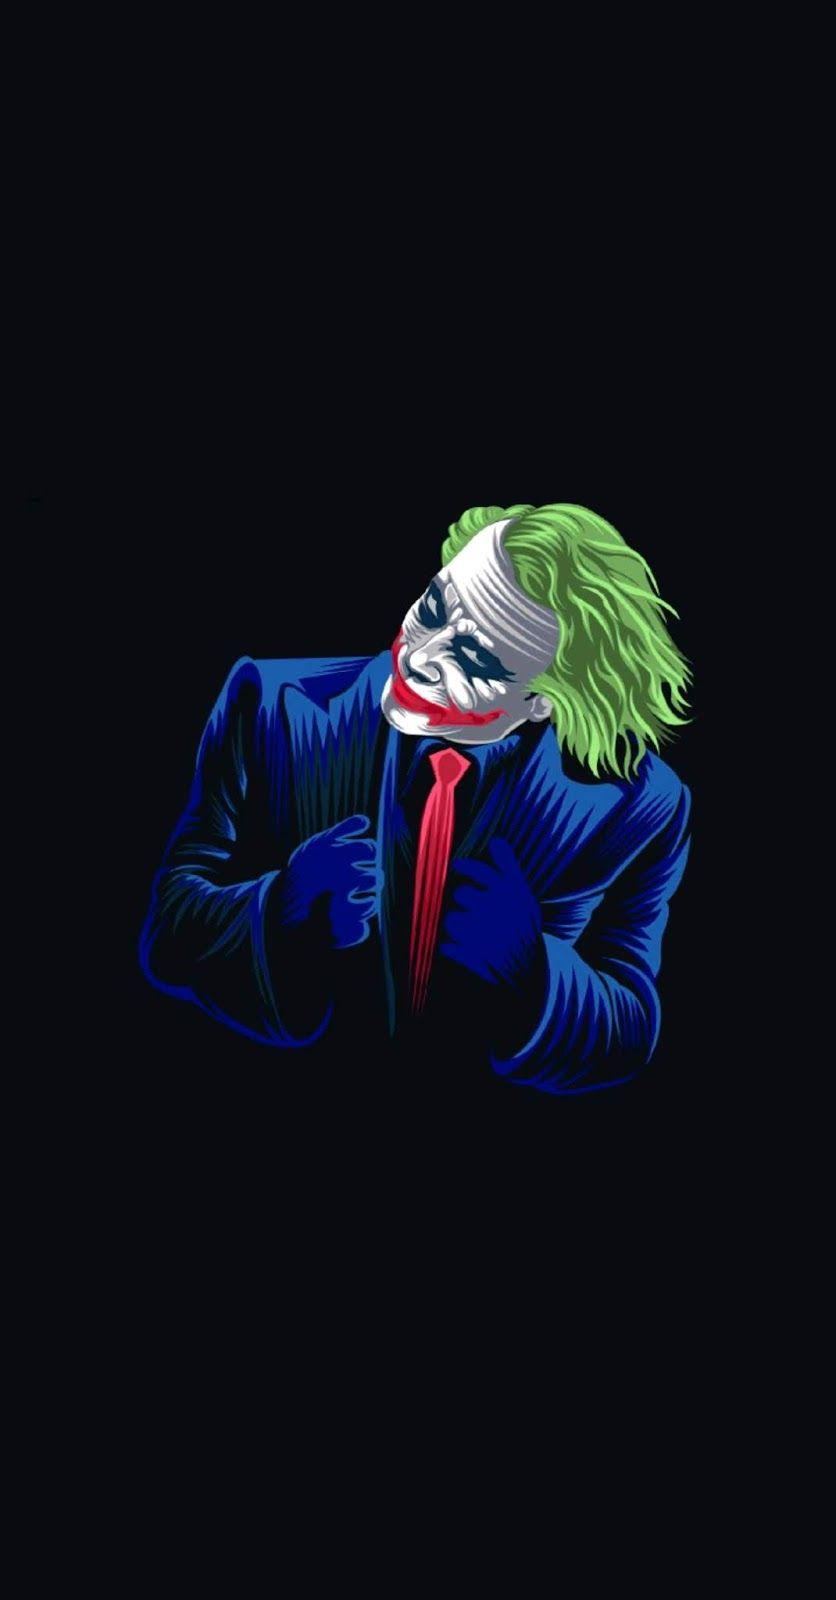 Hd Wallpapers For Iphone Latest Wallpapers 2020 Hd Joker Wallpapers Joker Iphone Wallpaper Joker Hd Wallpaper